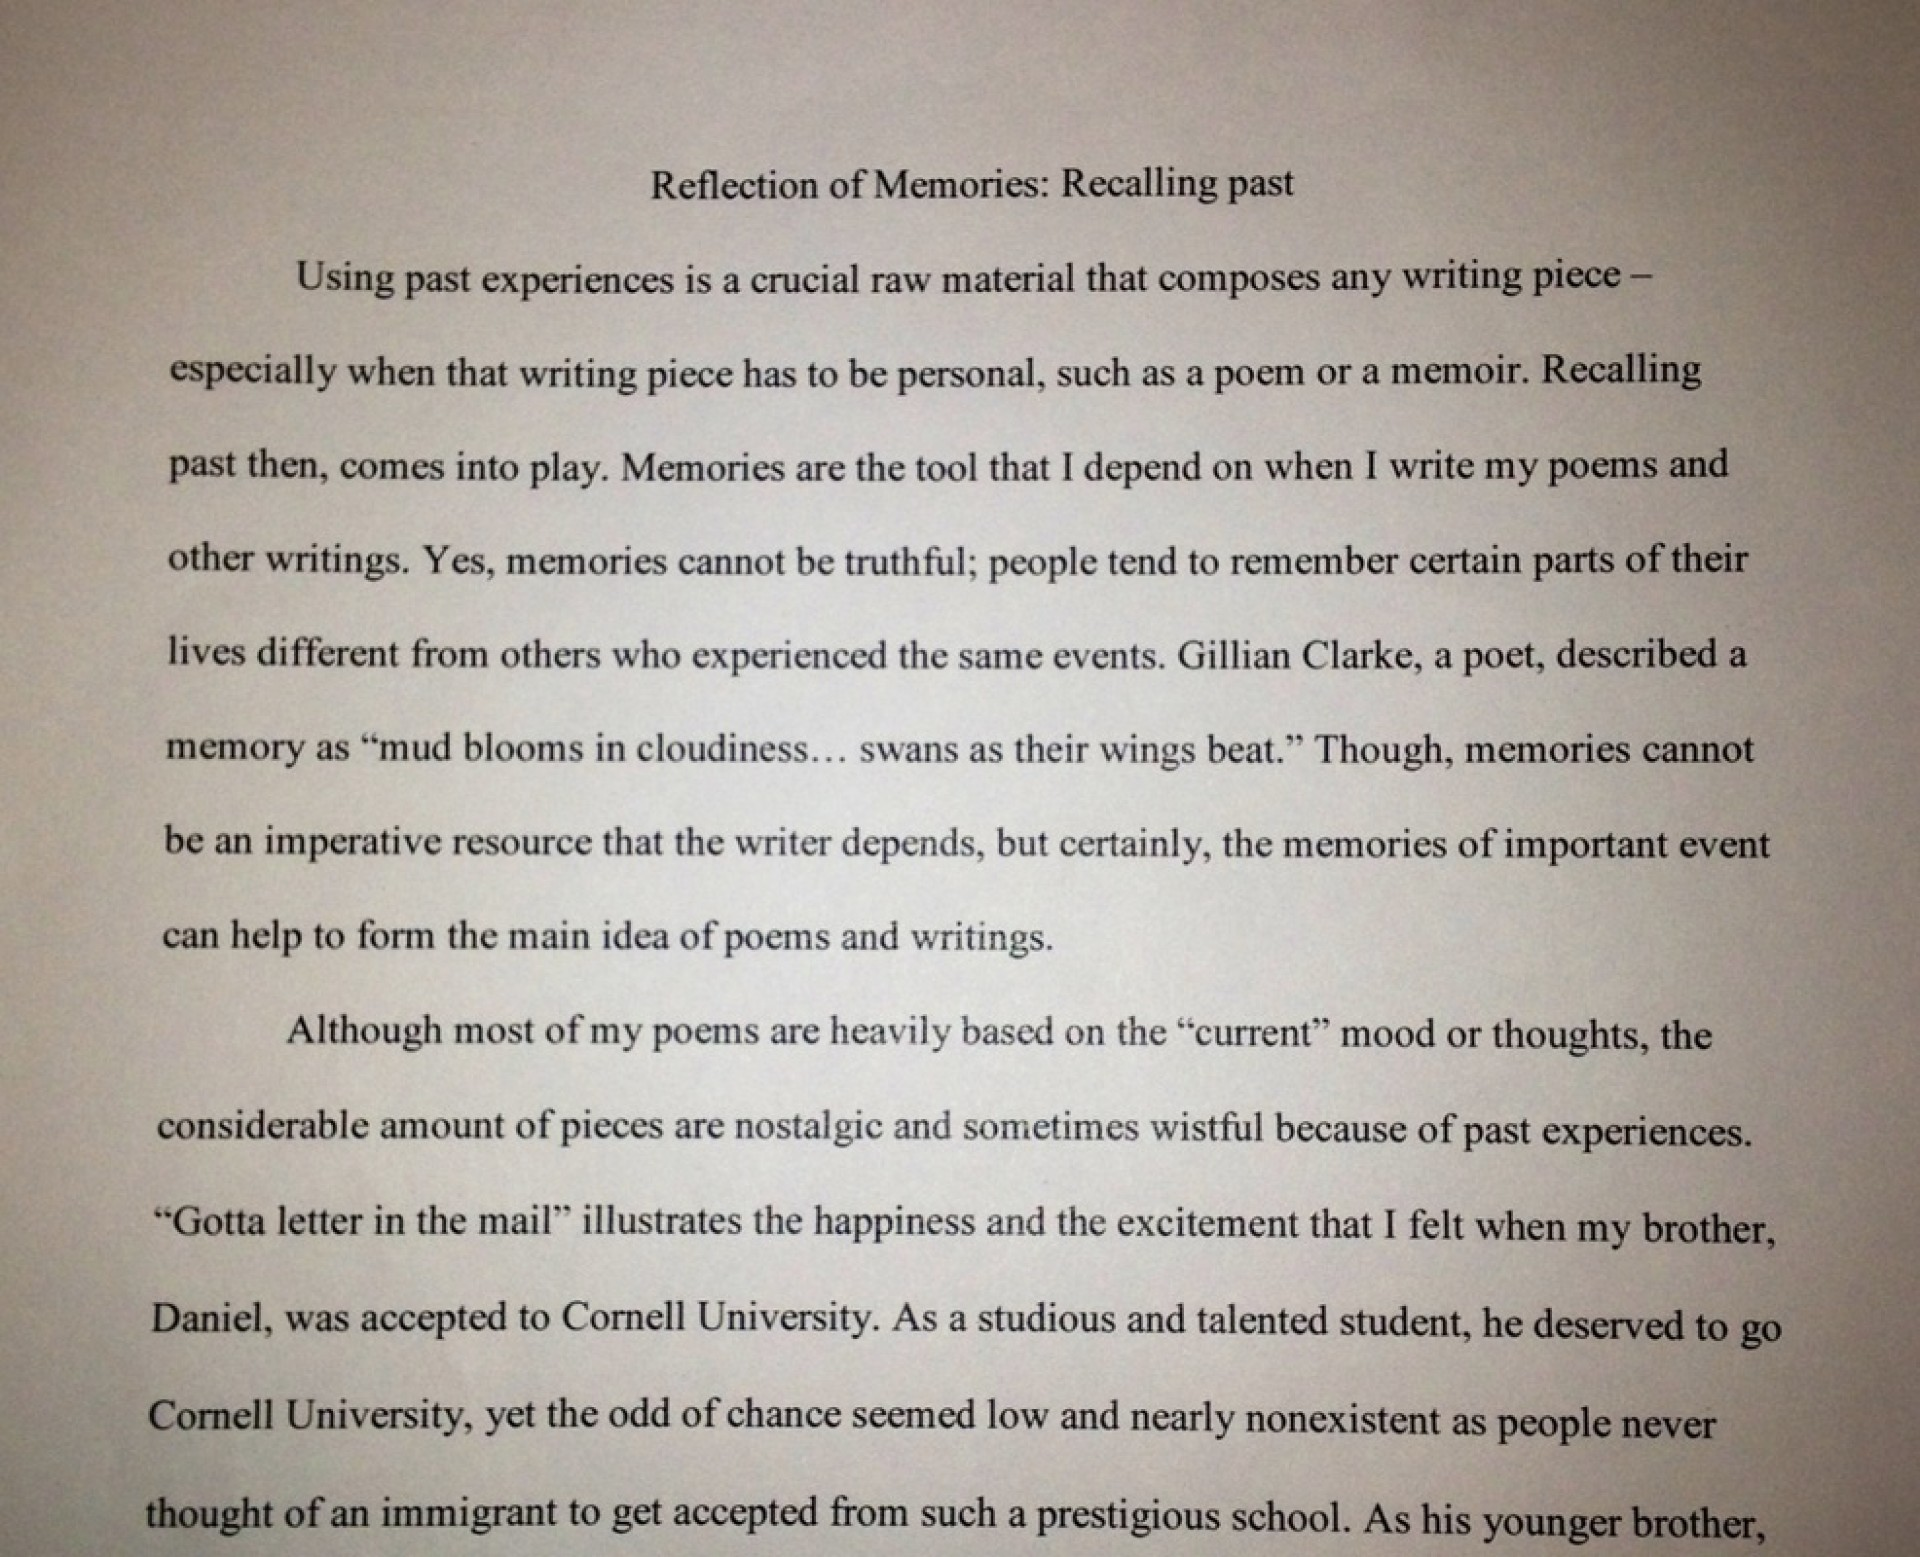 001 Essay Example 974774 Orig411 Taking Top Risks Writing In Business Narrative 1920